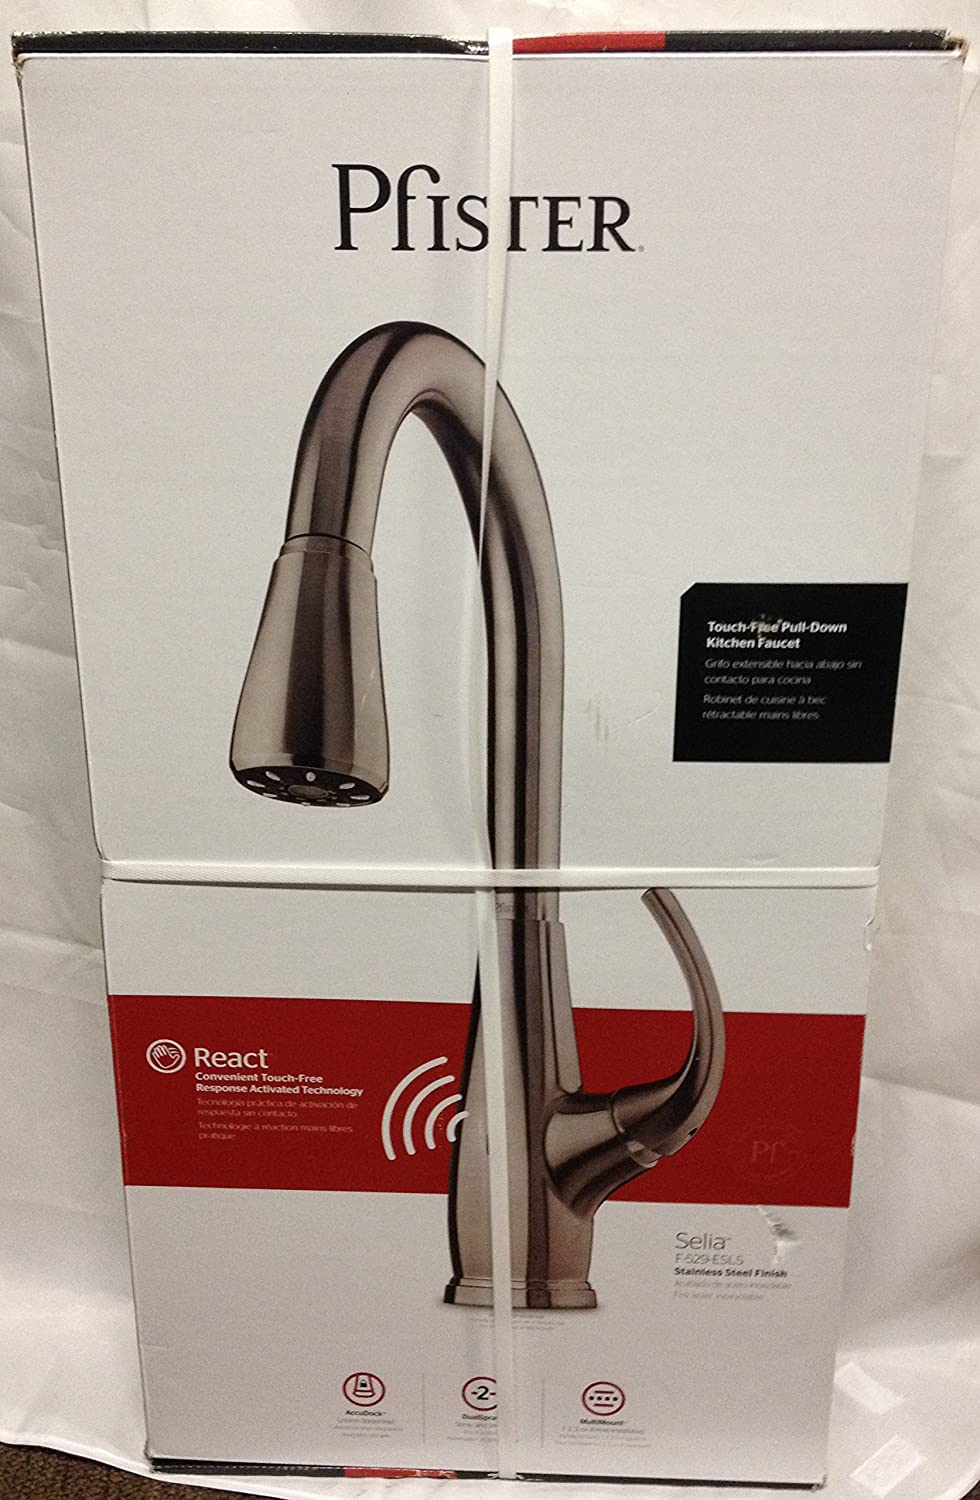 Pfister Selia Kitchen Faucet Selia Touch Free Pull Down Kitchen Faucet With React F 529 Esls